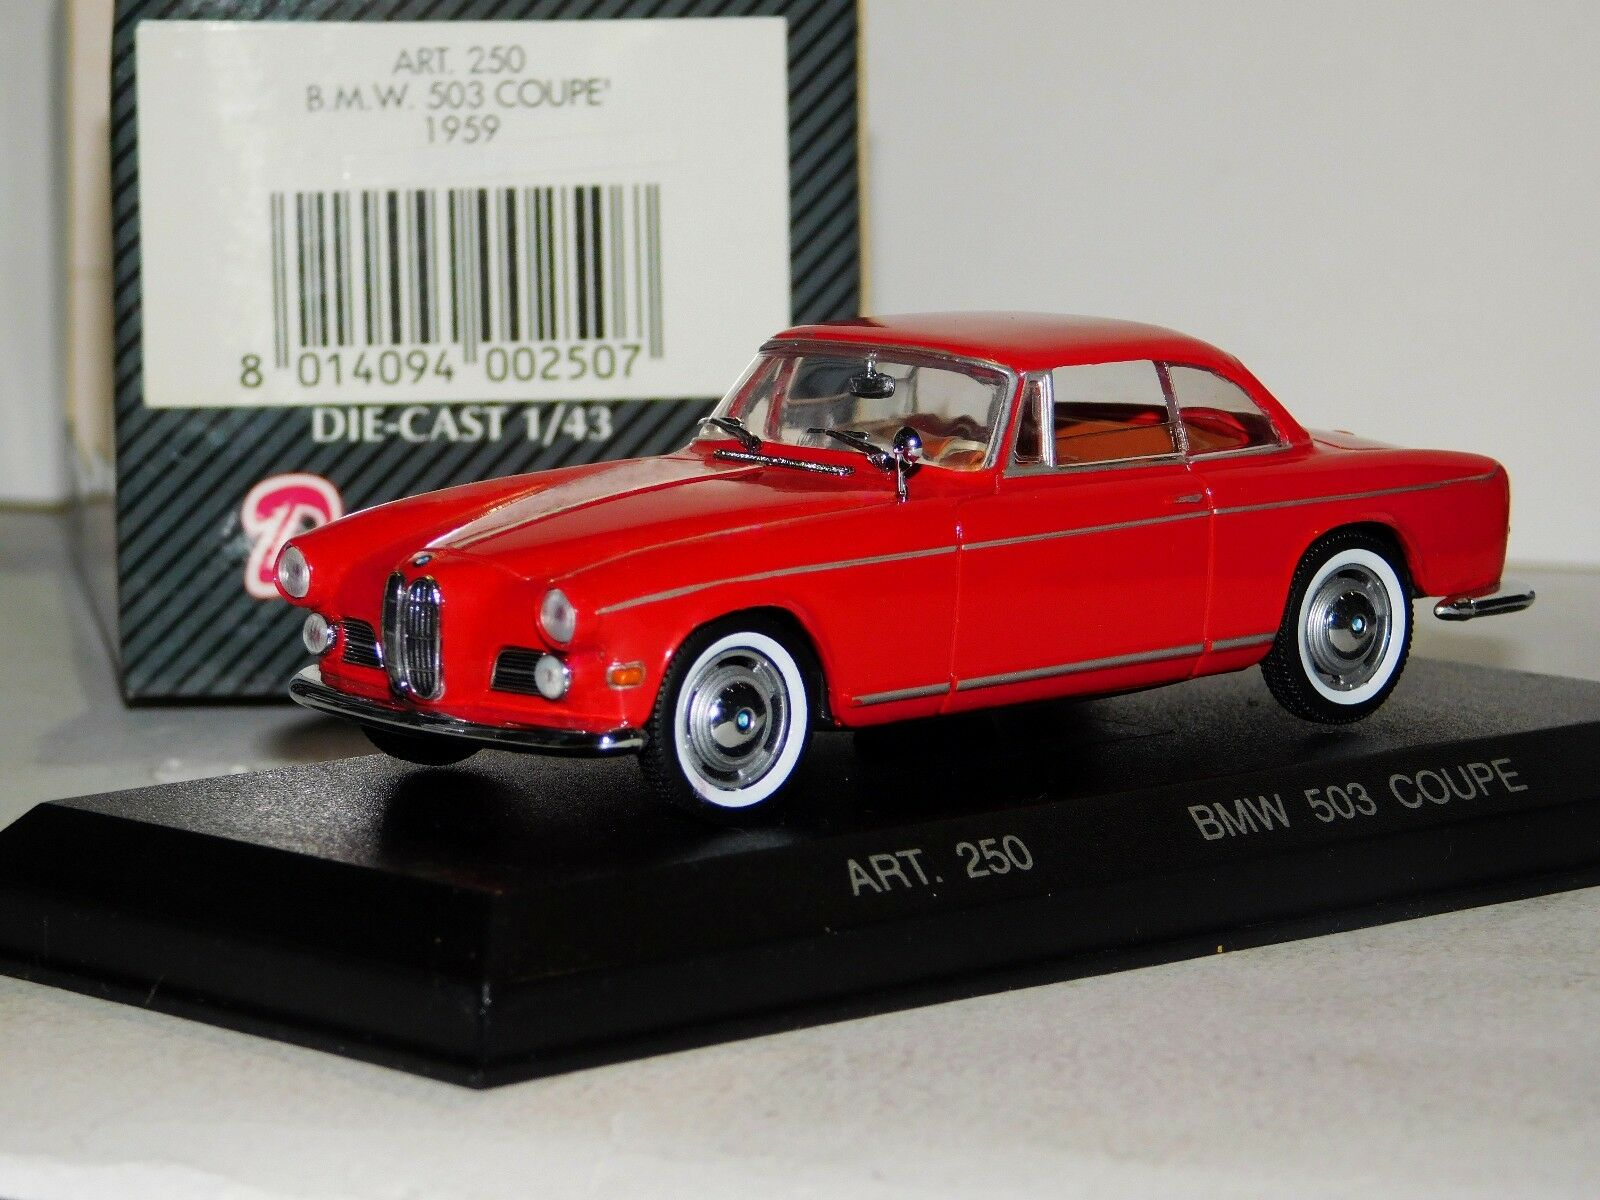 BMW 503 503 503 COUPE 1959 COUPE RED DETAIL CARS ART 250 1 43 51afa9